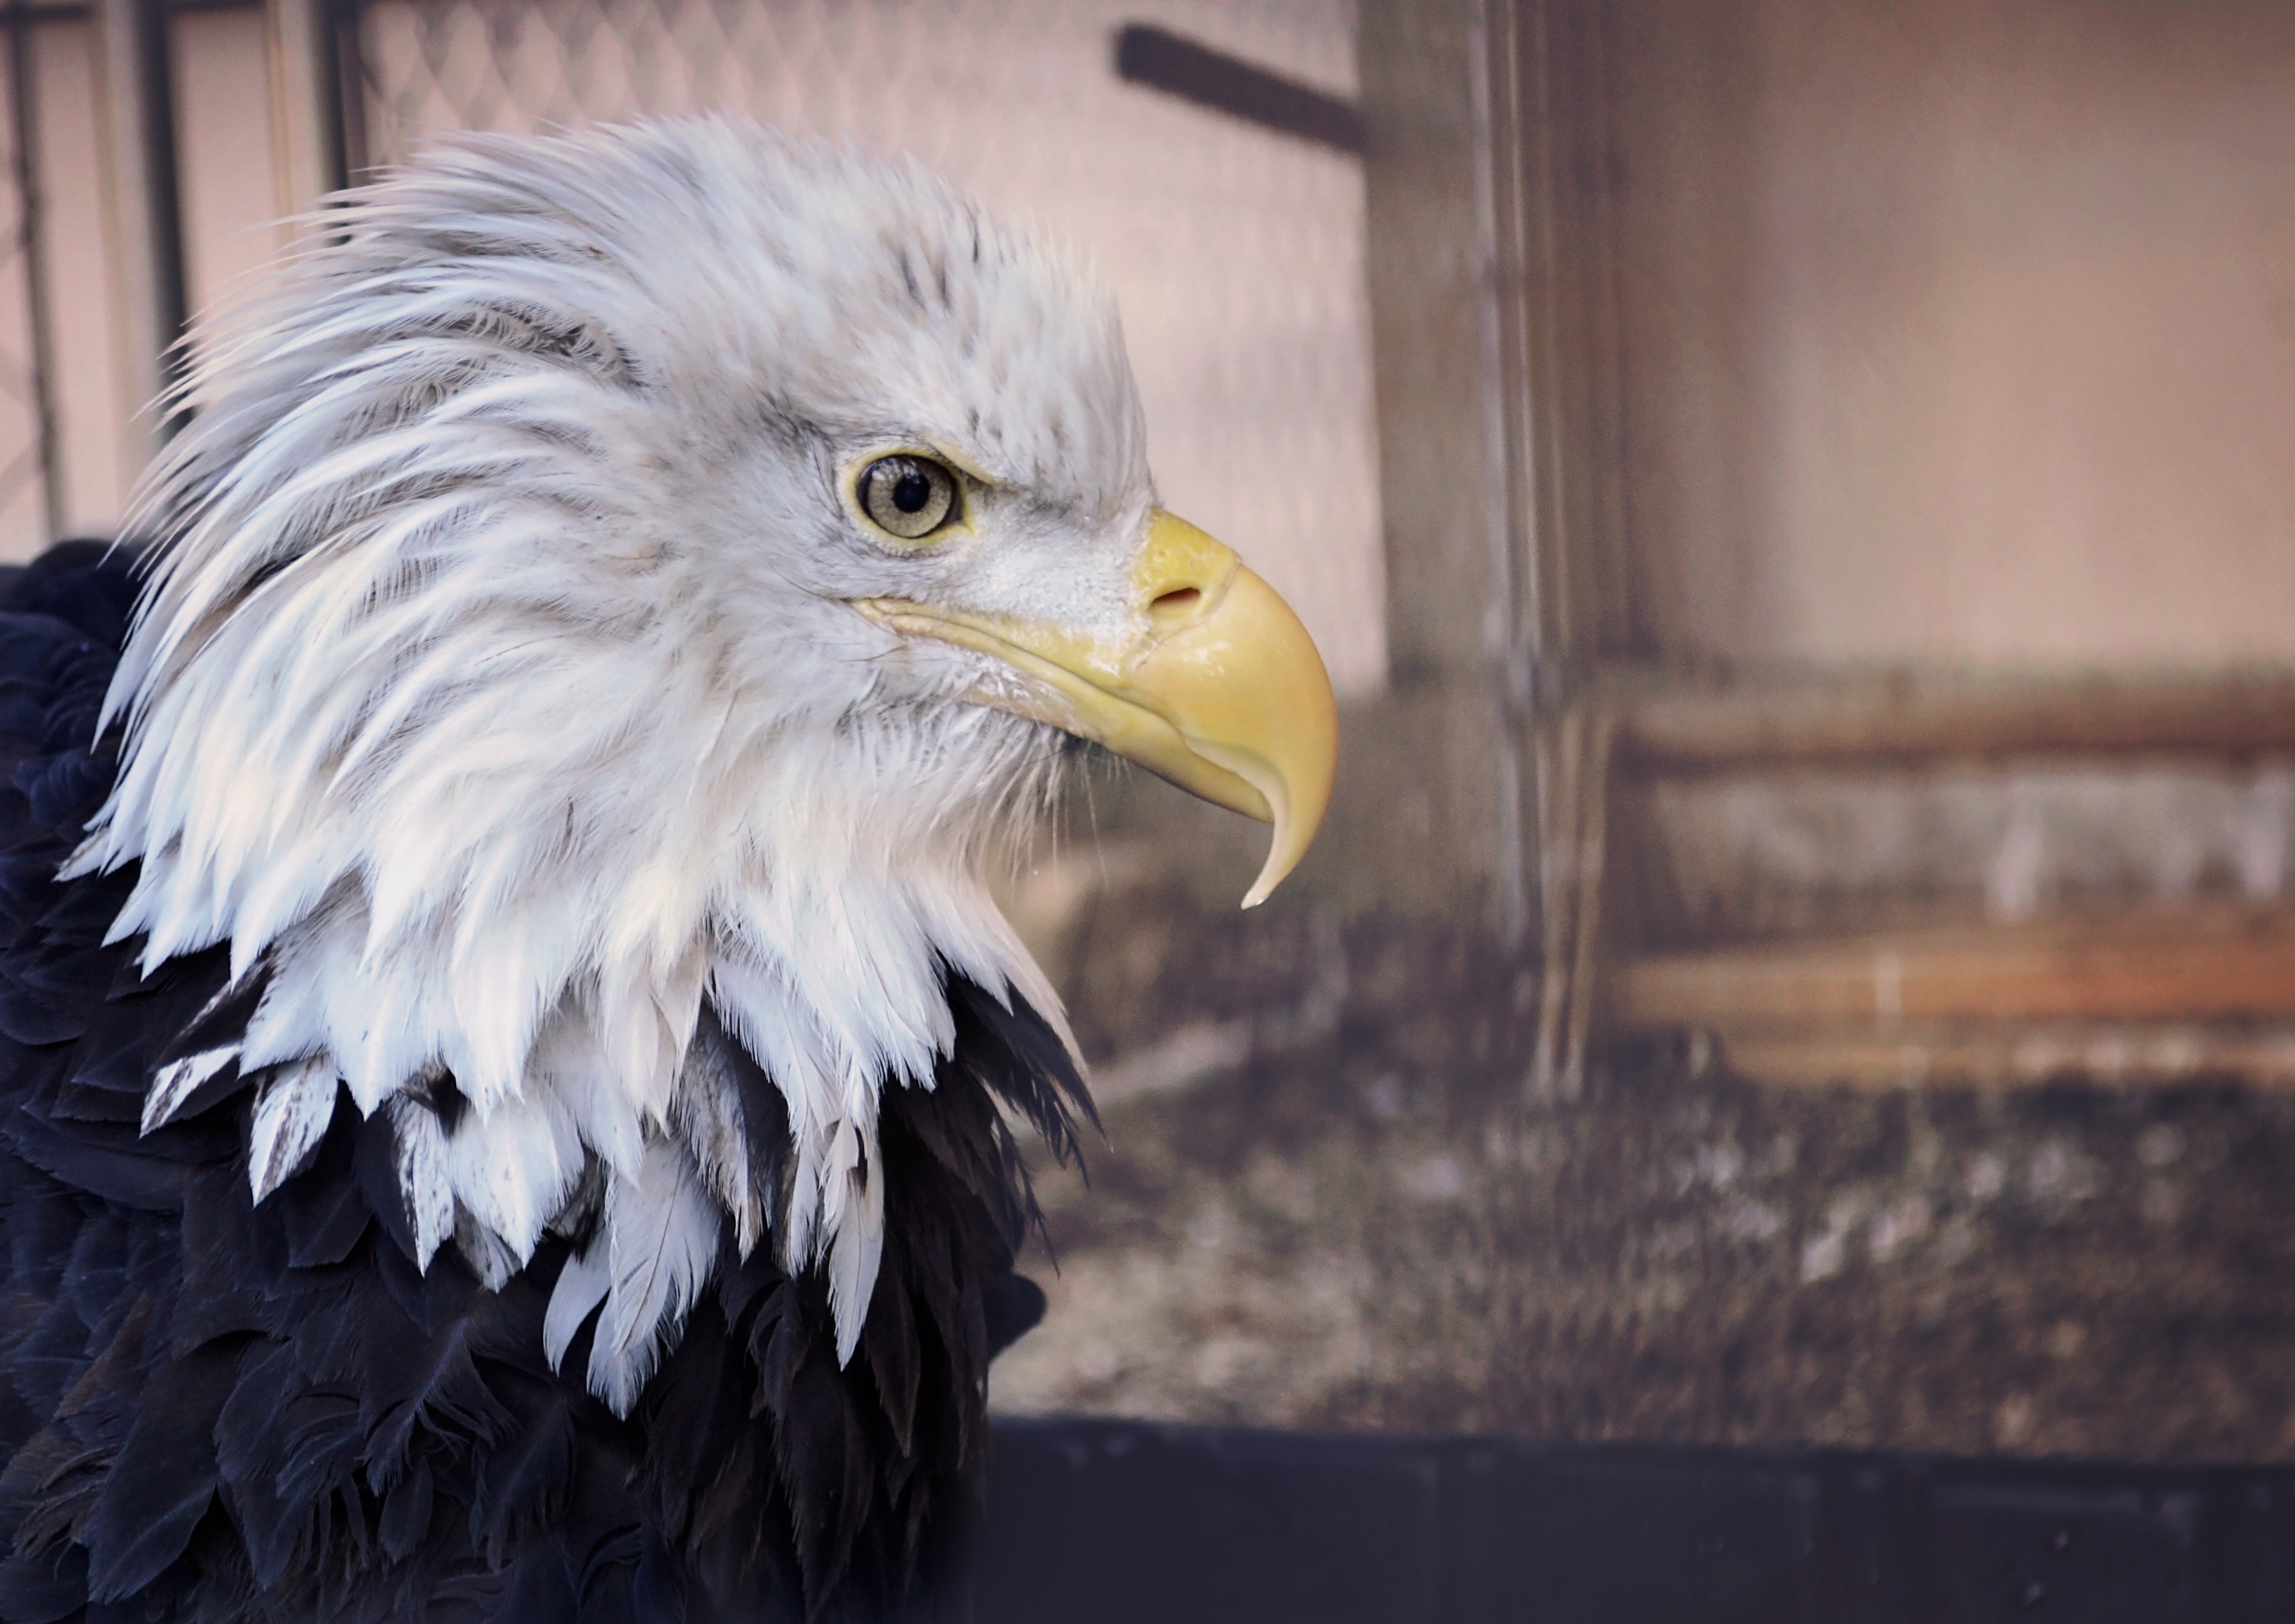 bald_eagle_eagle_bird_predator_beak_115778_4240x3000